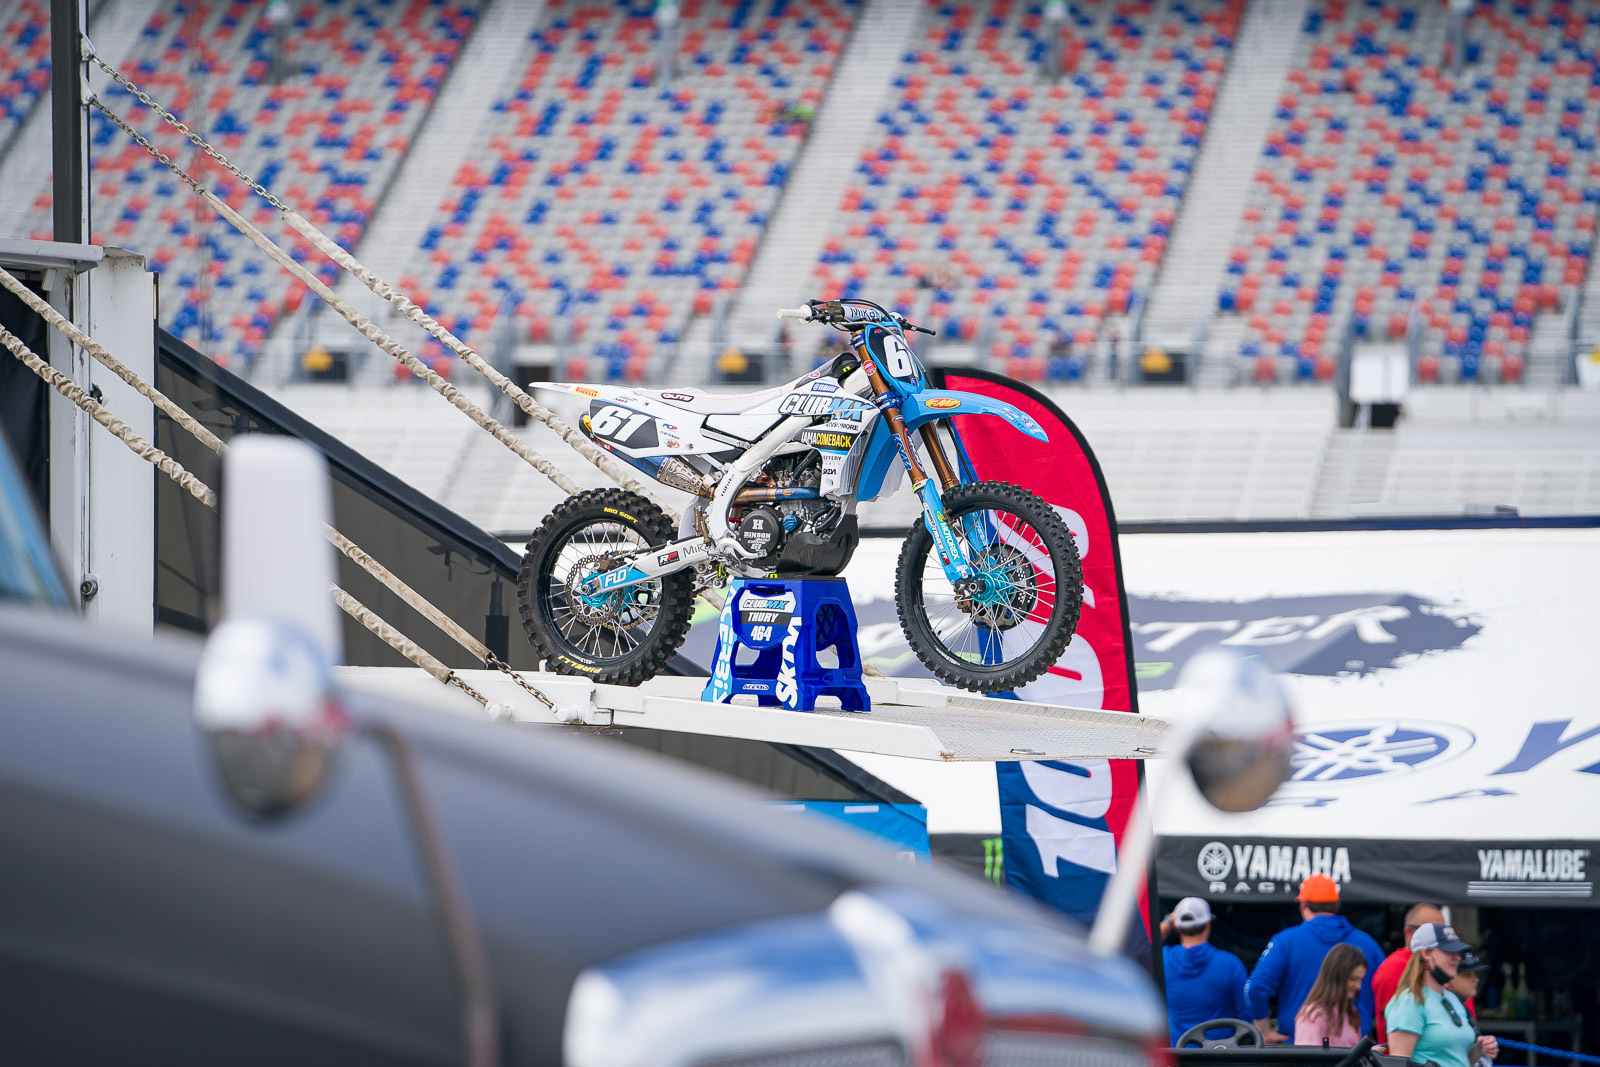 2021-ATLANTA-THREE-SUPERCROSS_KICKSTART_0955